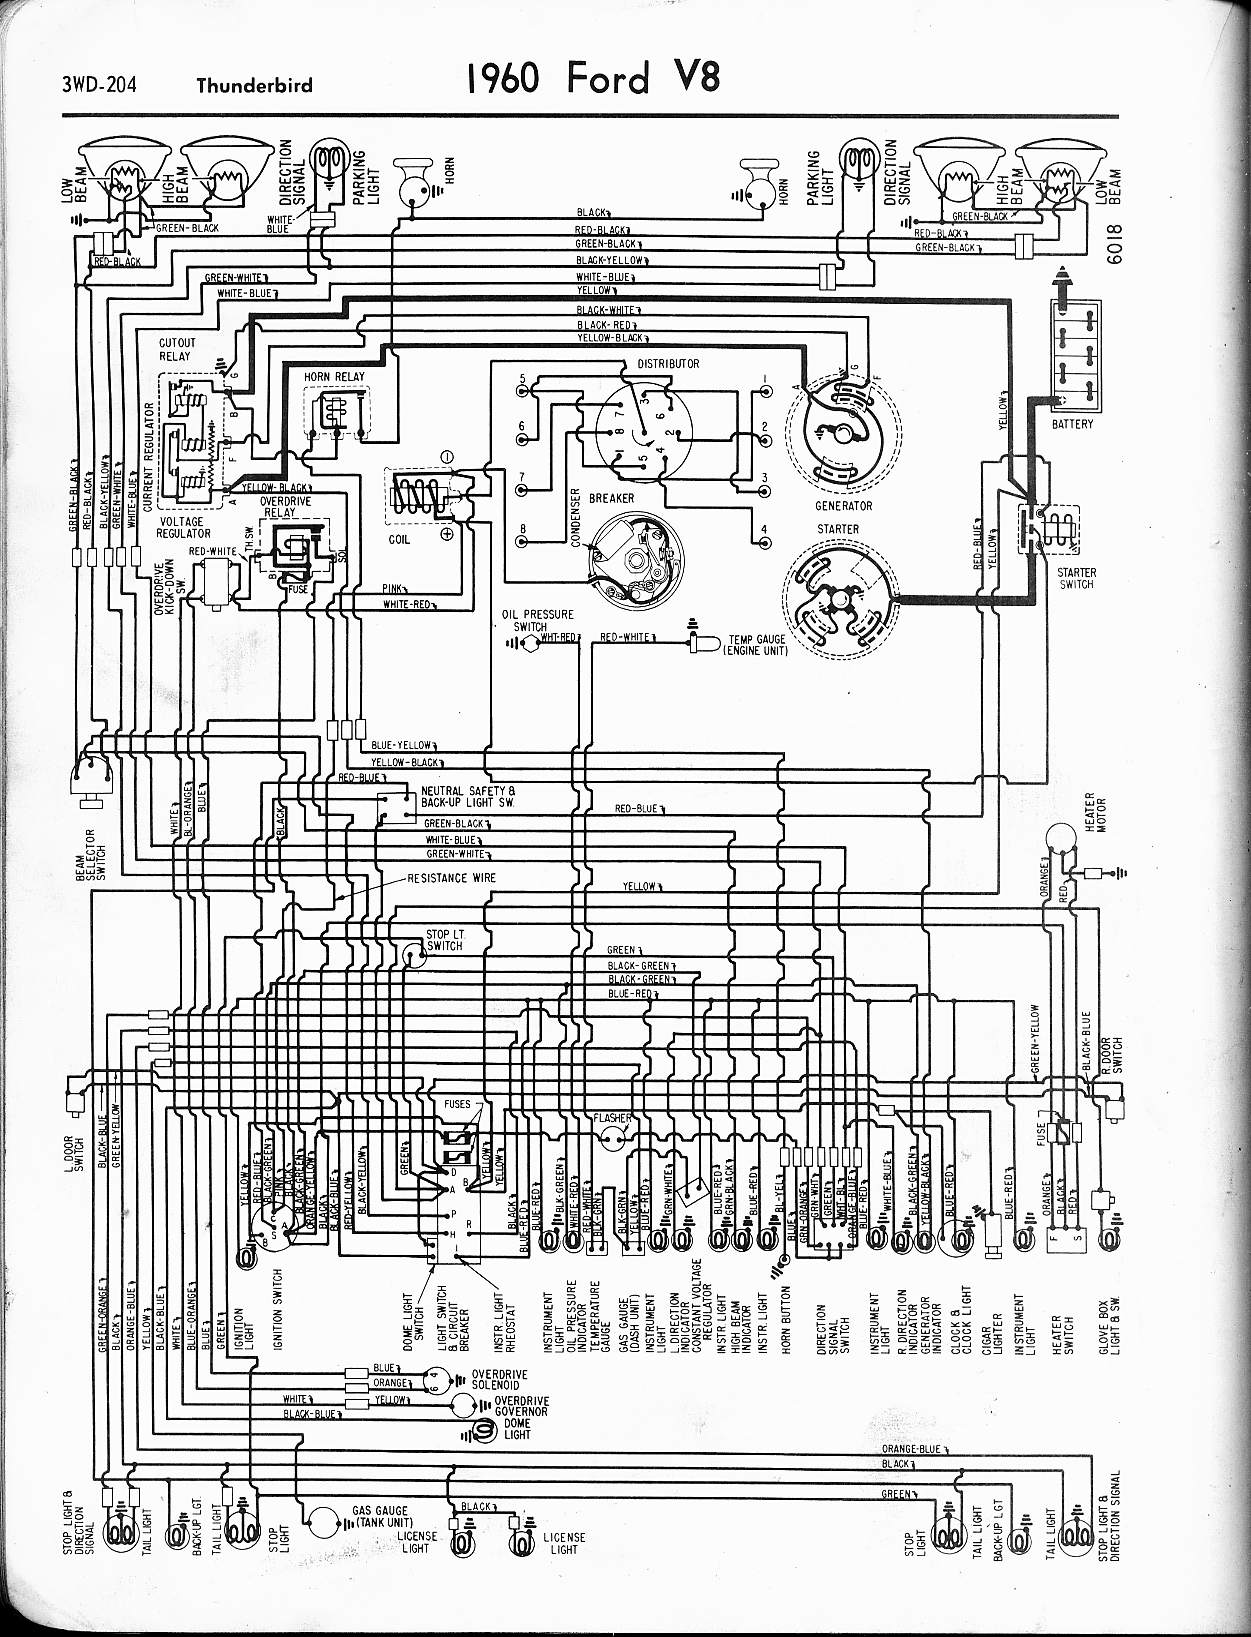 MWire5765 204?resize=665%2C870 1964 ford thunderbird convertible wiring diagram wiring diagram 1965 thunderbird wiring diagram at edmiracle.co